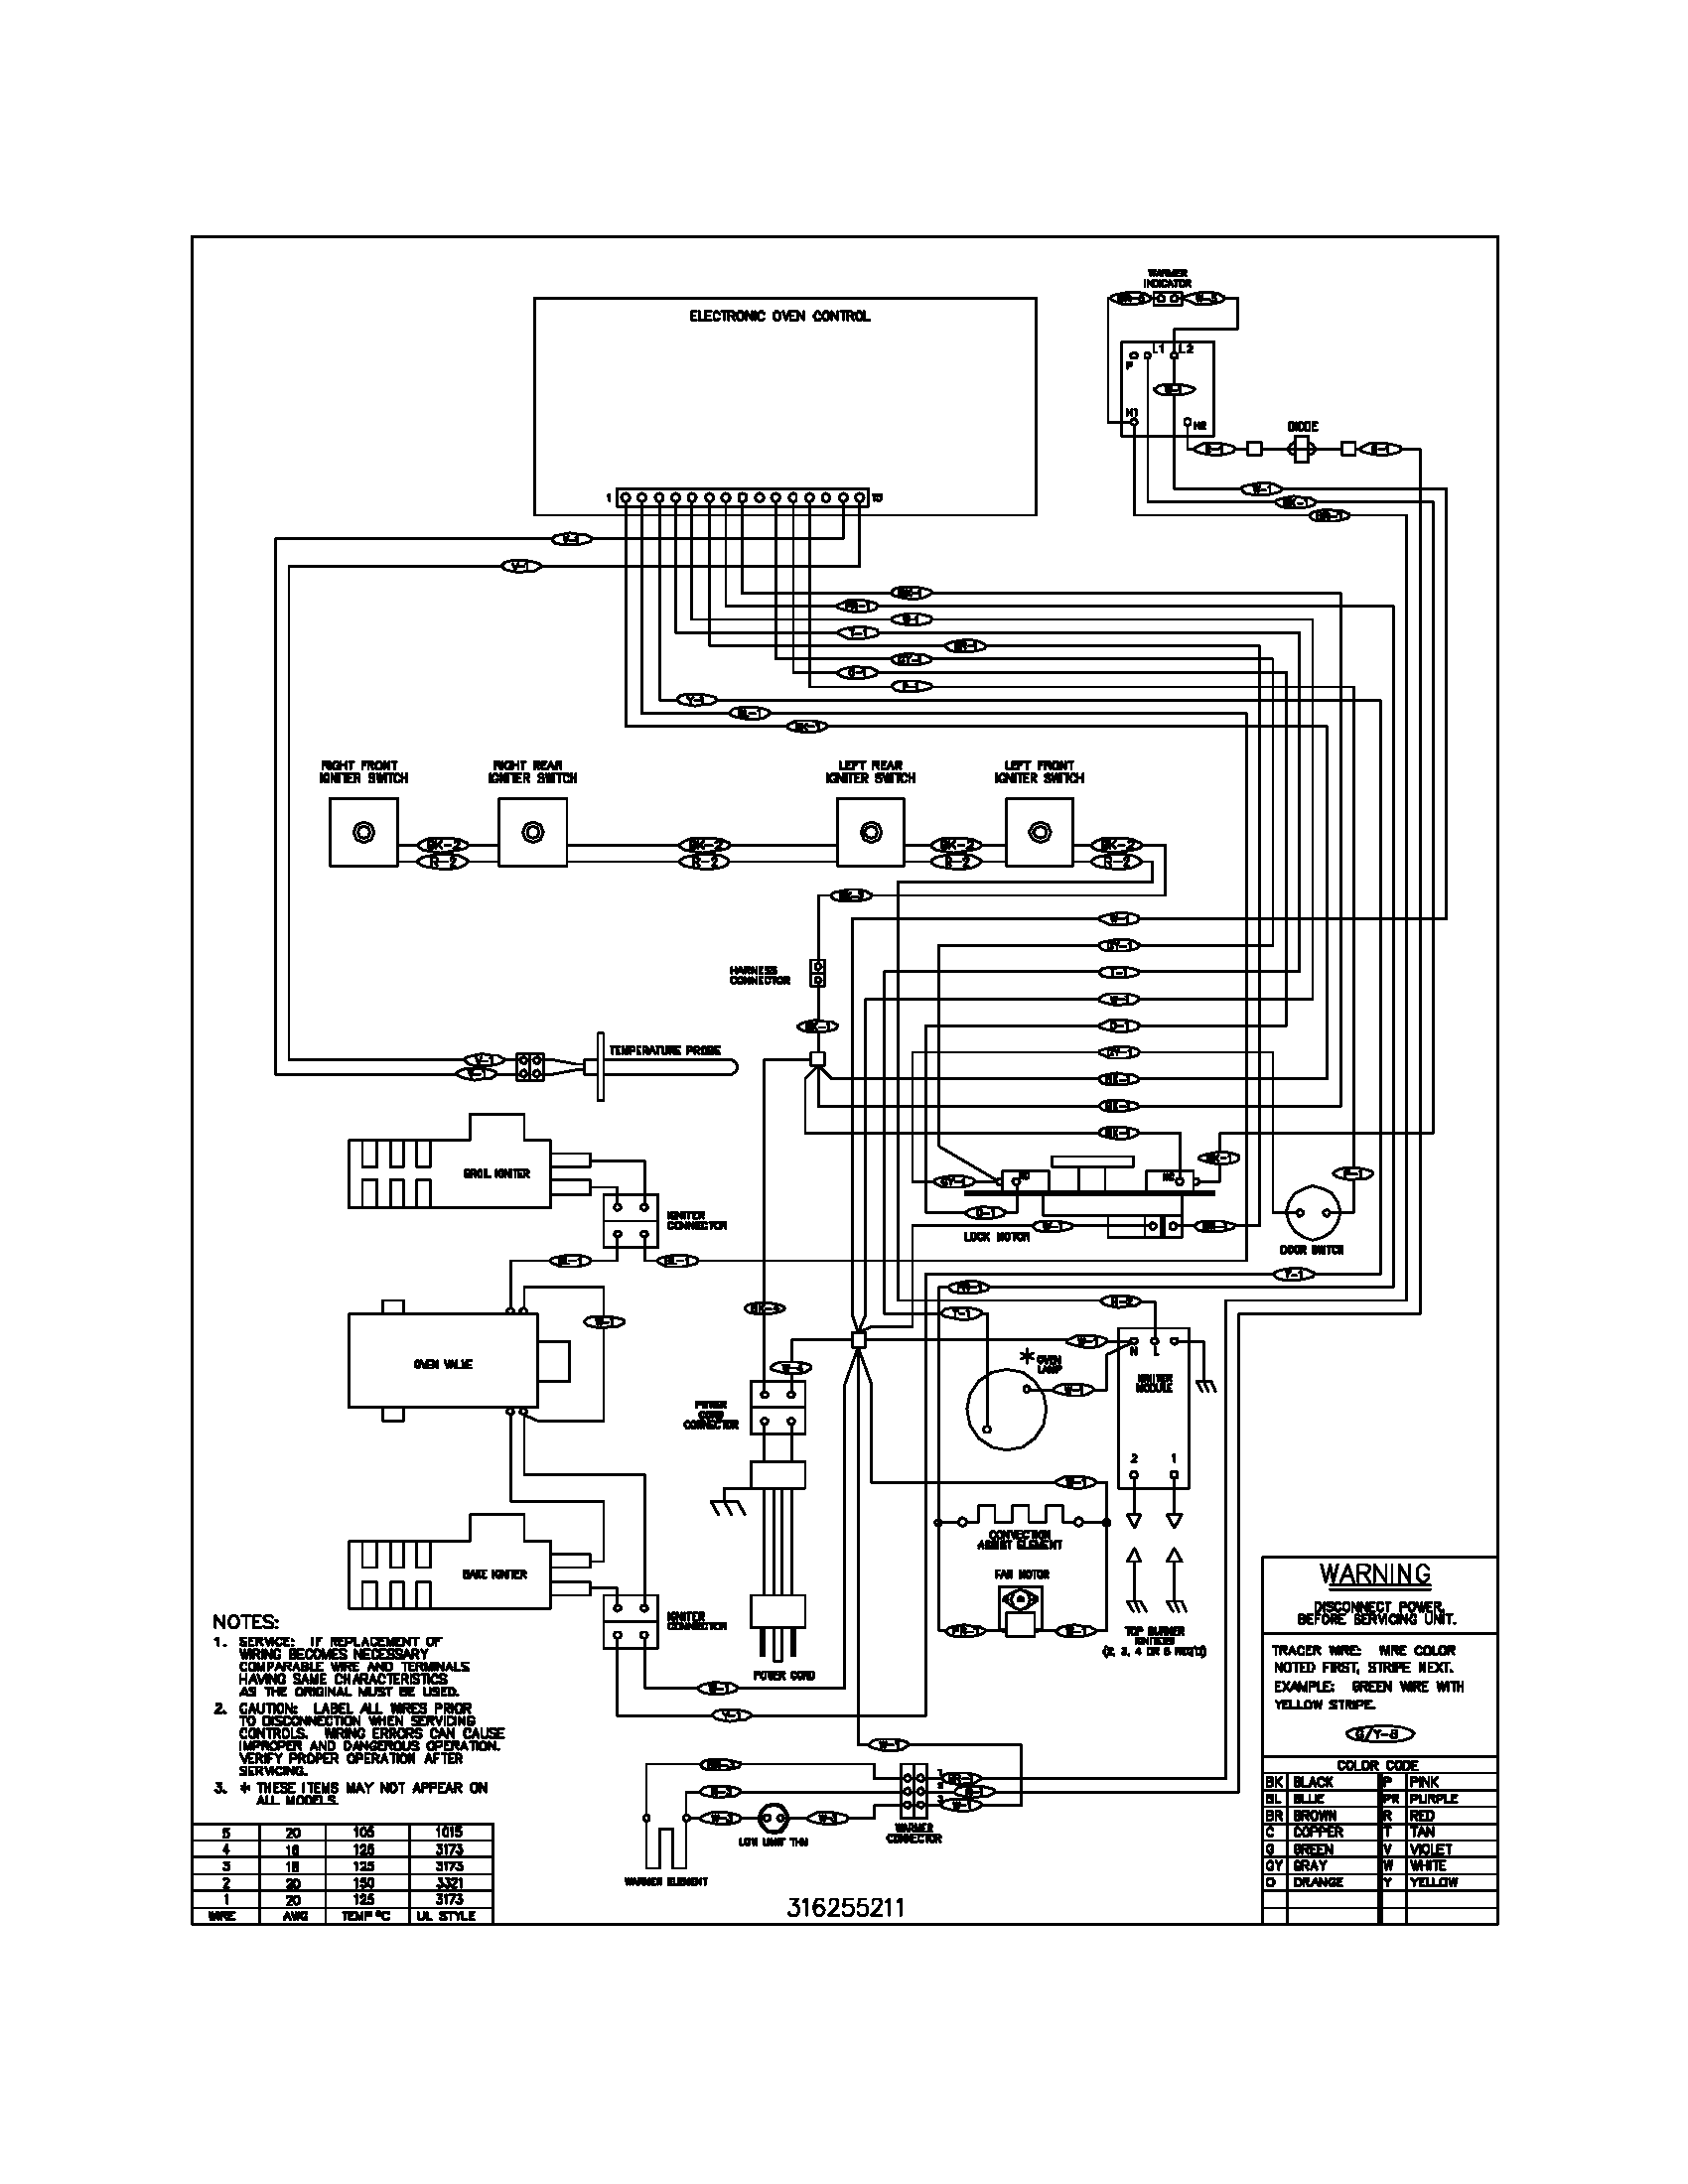 wiring diagram parts frigidaire plgf389ccc gas range timer stove clocks and appliance gas guard wiring diagram at crackthecode.co